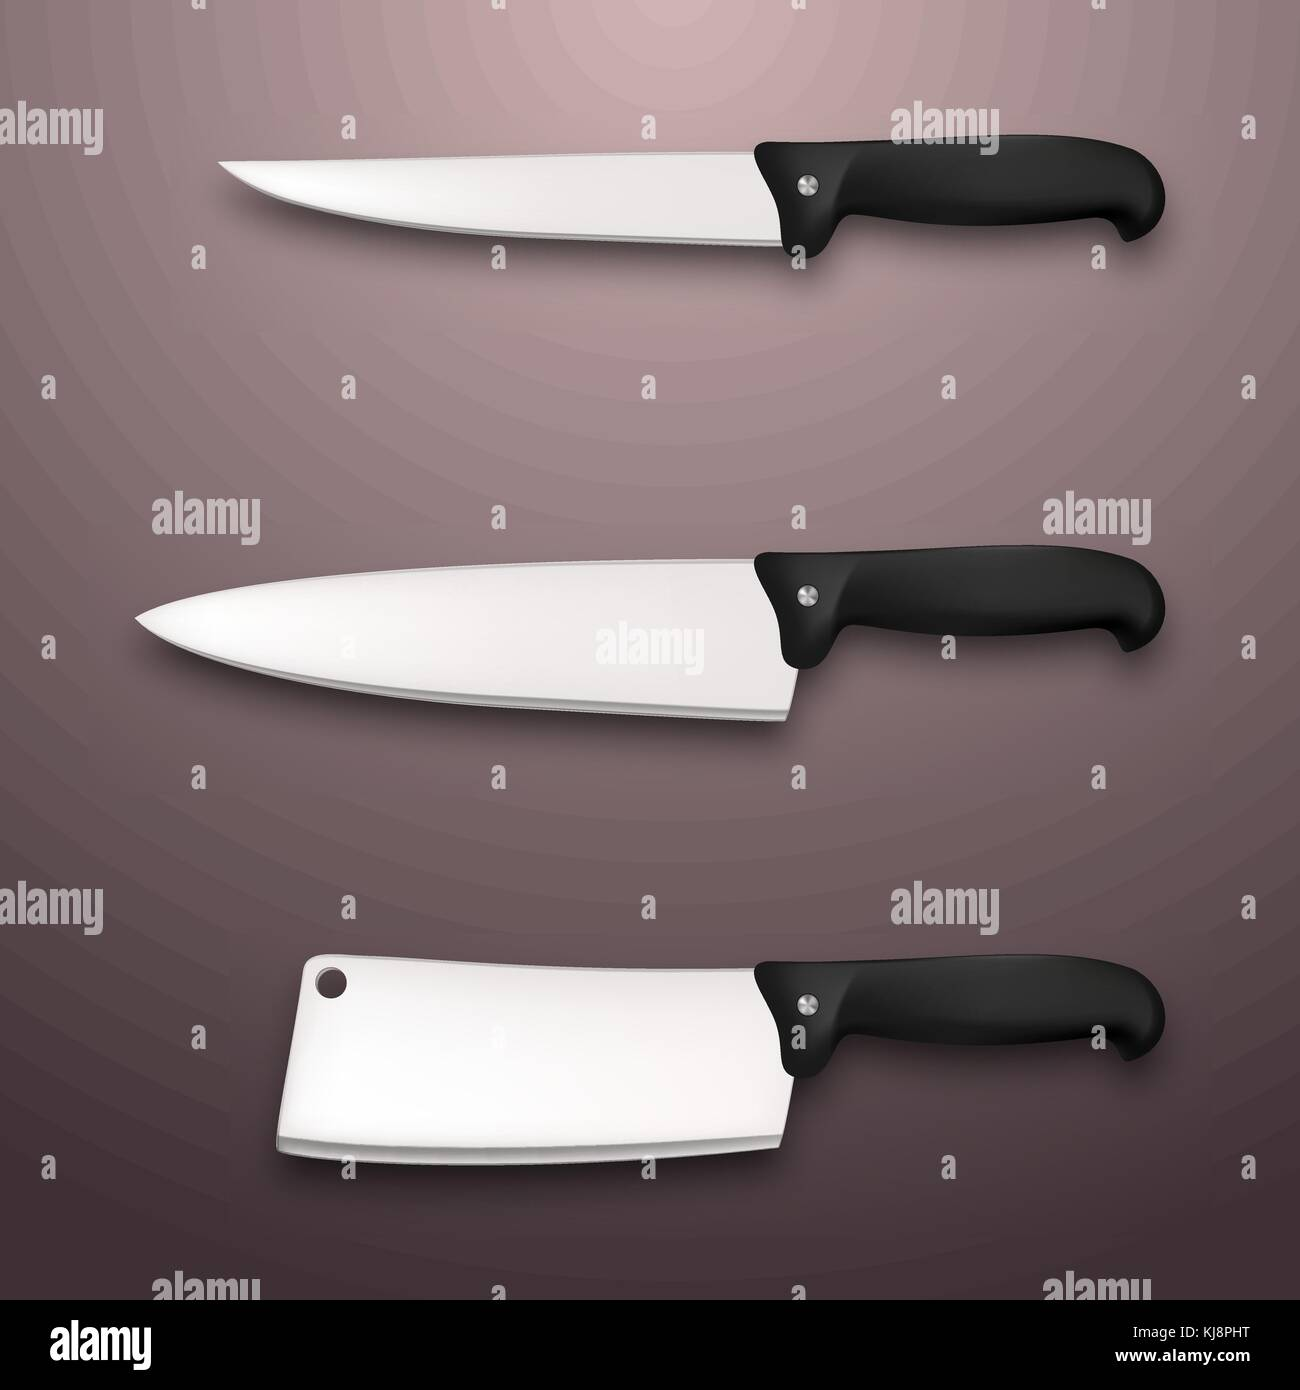 Cutlery icon set - vector realistic kitchen knives isolated. Design template - Stock Image